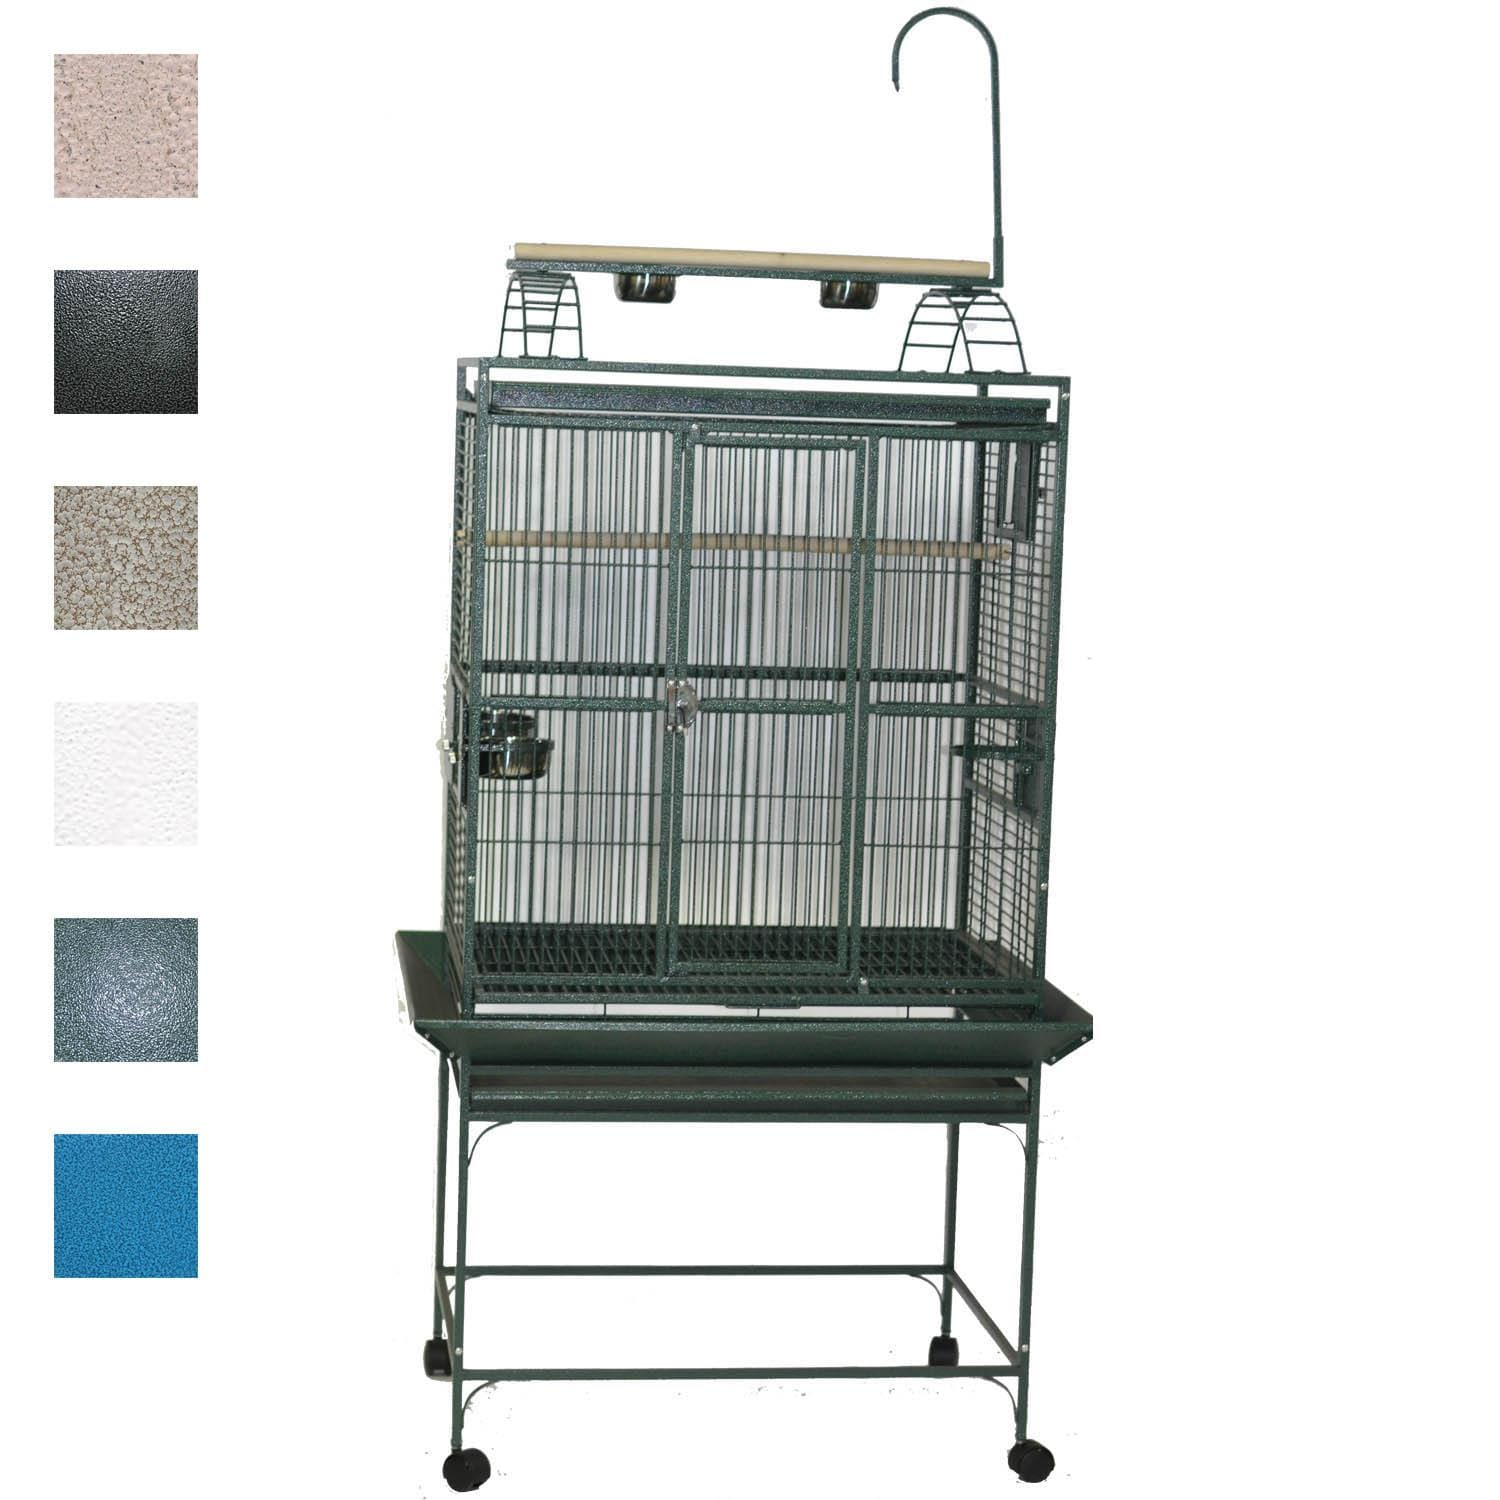 "Image of A&E Cage Company 32"" X 23"" Play Top Bird Cage in Black"